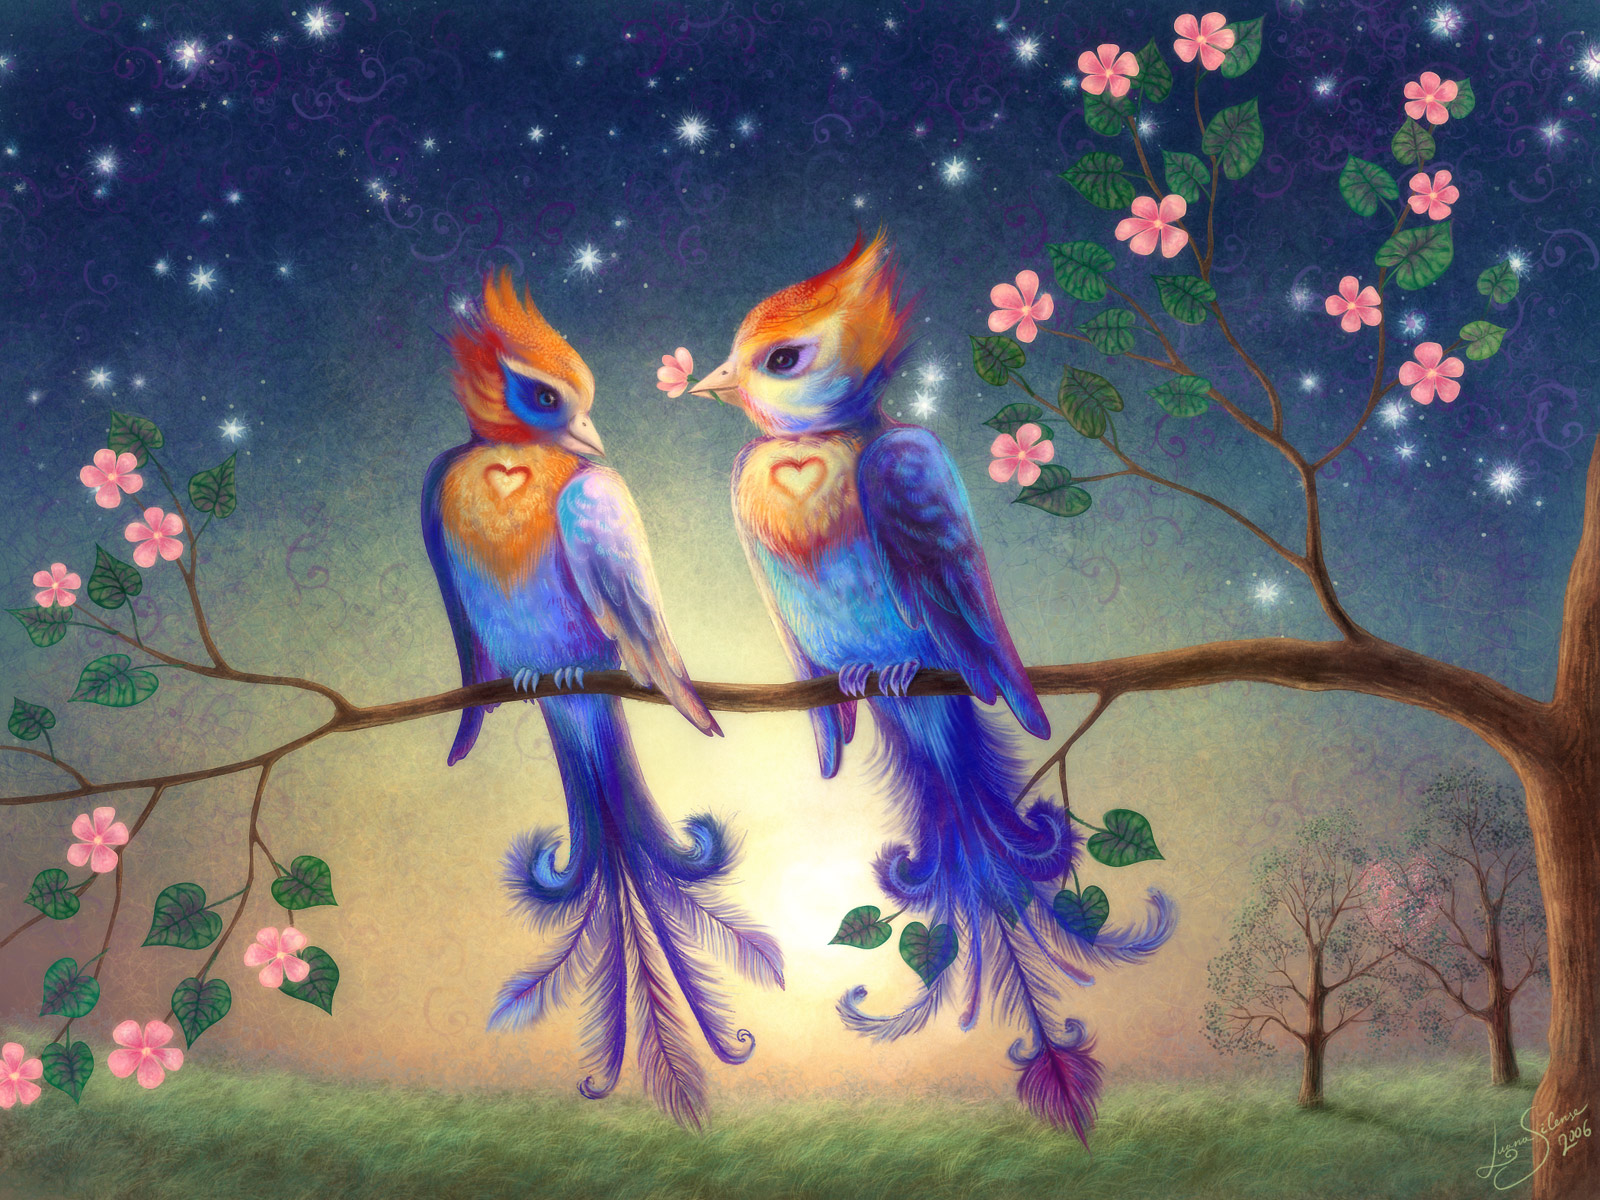 New Love Beautiful Wallpaper : Beautiful love birds wallpapers Funny Animal